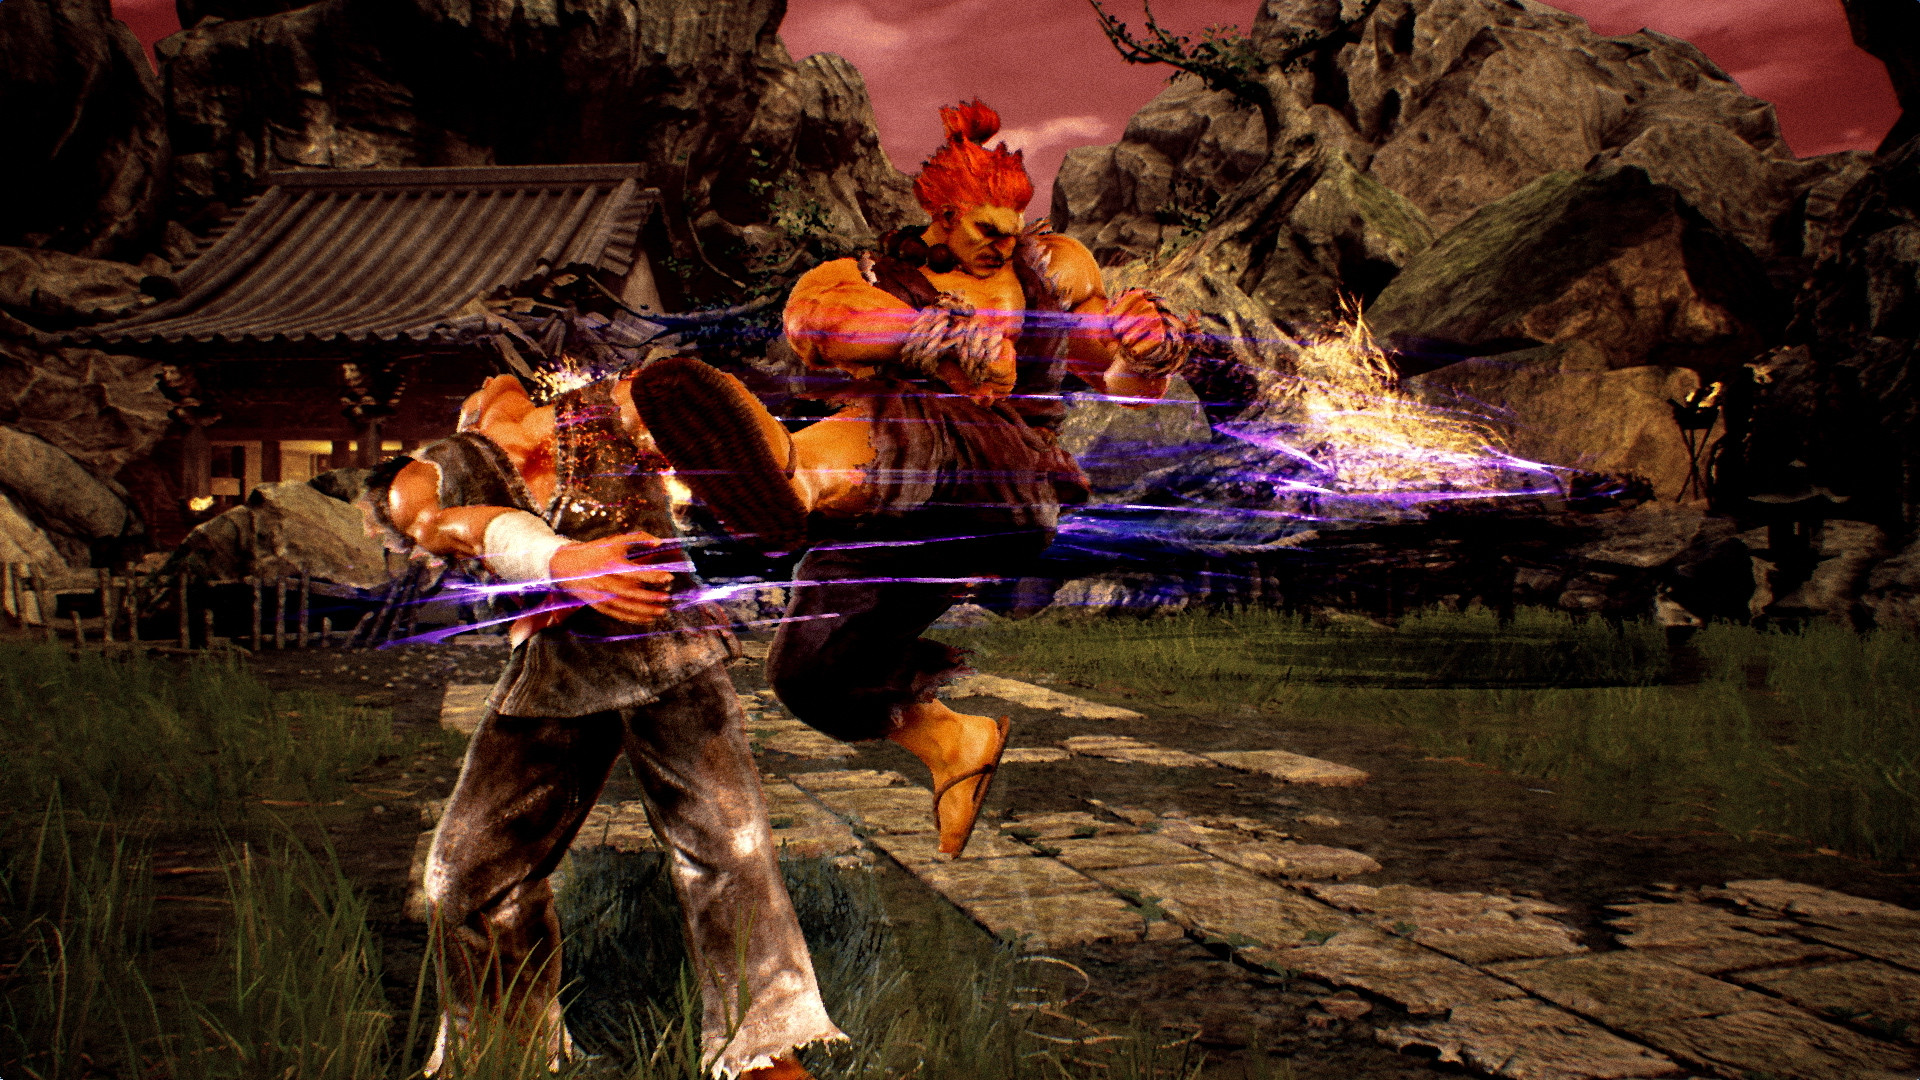 Res: 1920x1080, When fighting Akuma in Tekken 7, be sure to keep your distance at all times